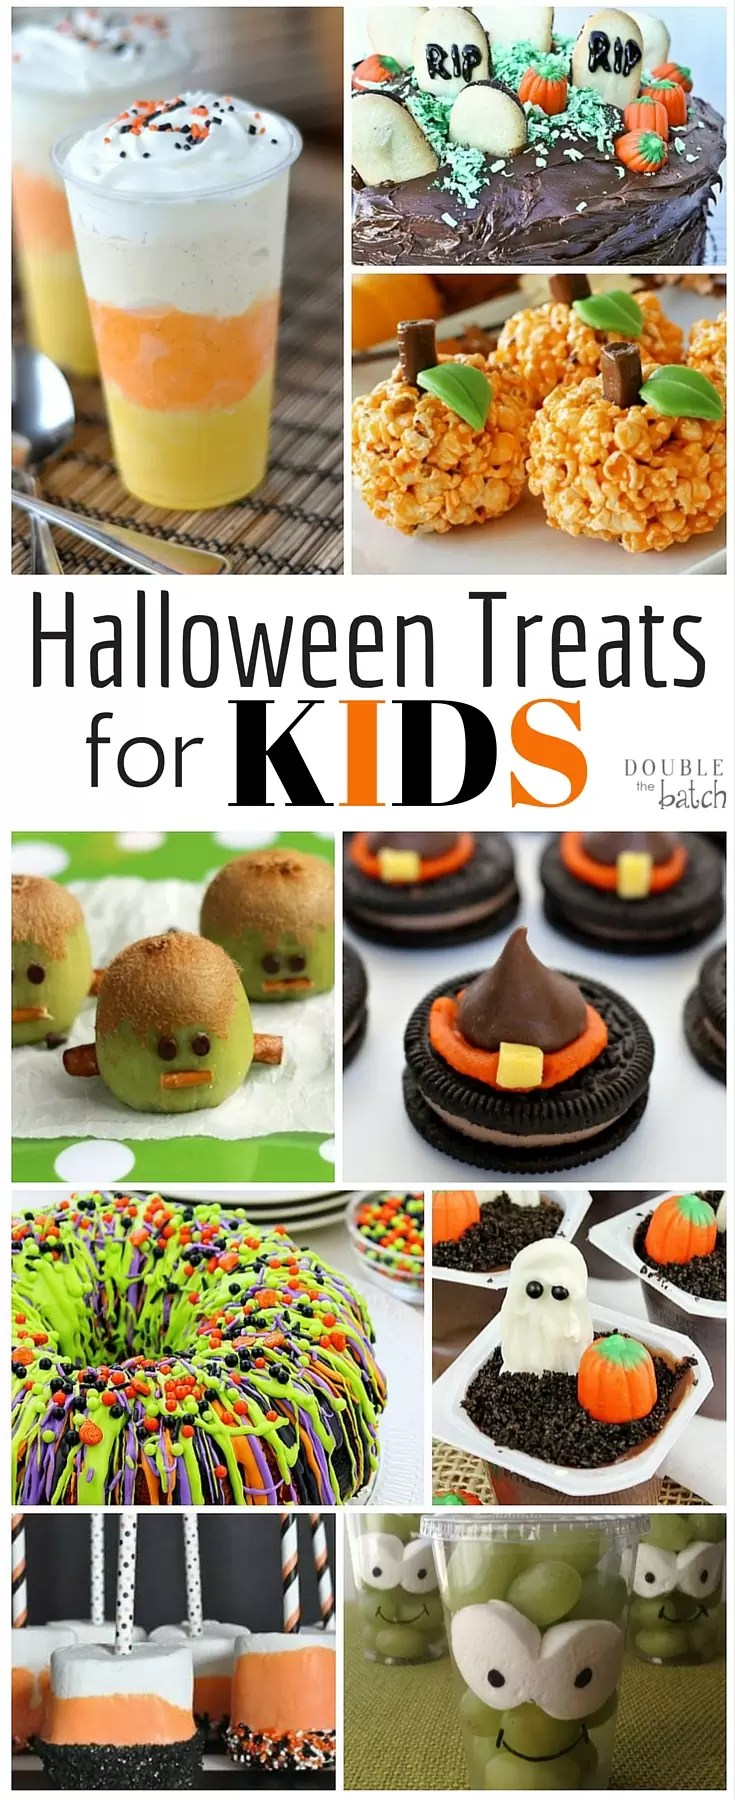 These Halloween Treats for Kids look like SOO much fun! Who says I have to wait till Halloween?